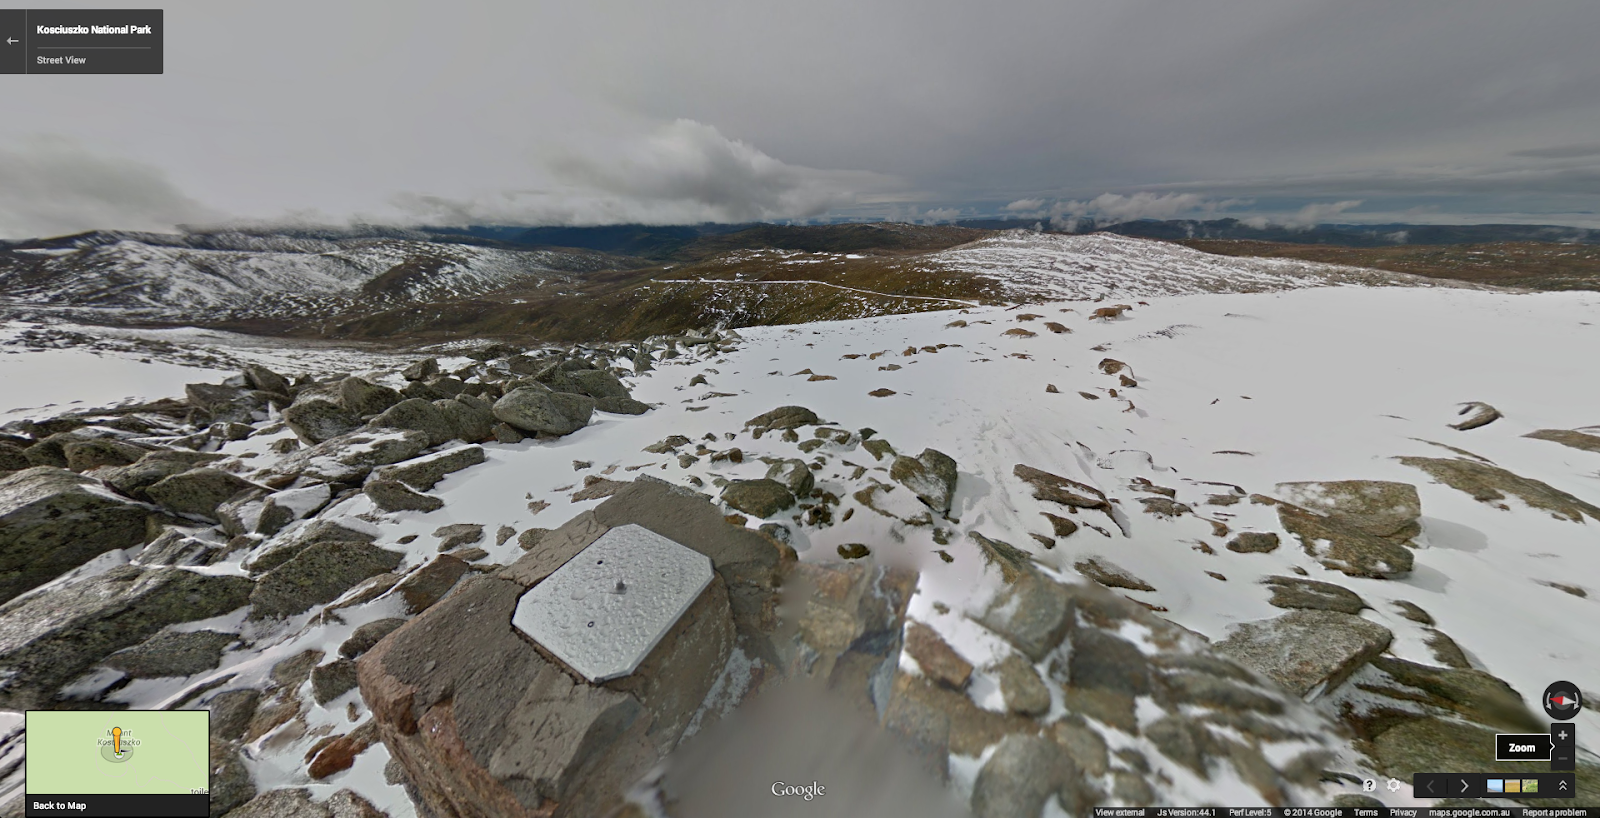 At the summit of Mount Kosciuszko